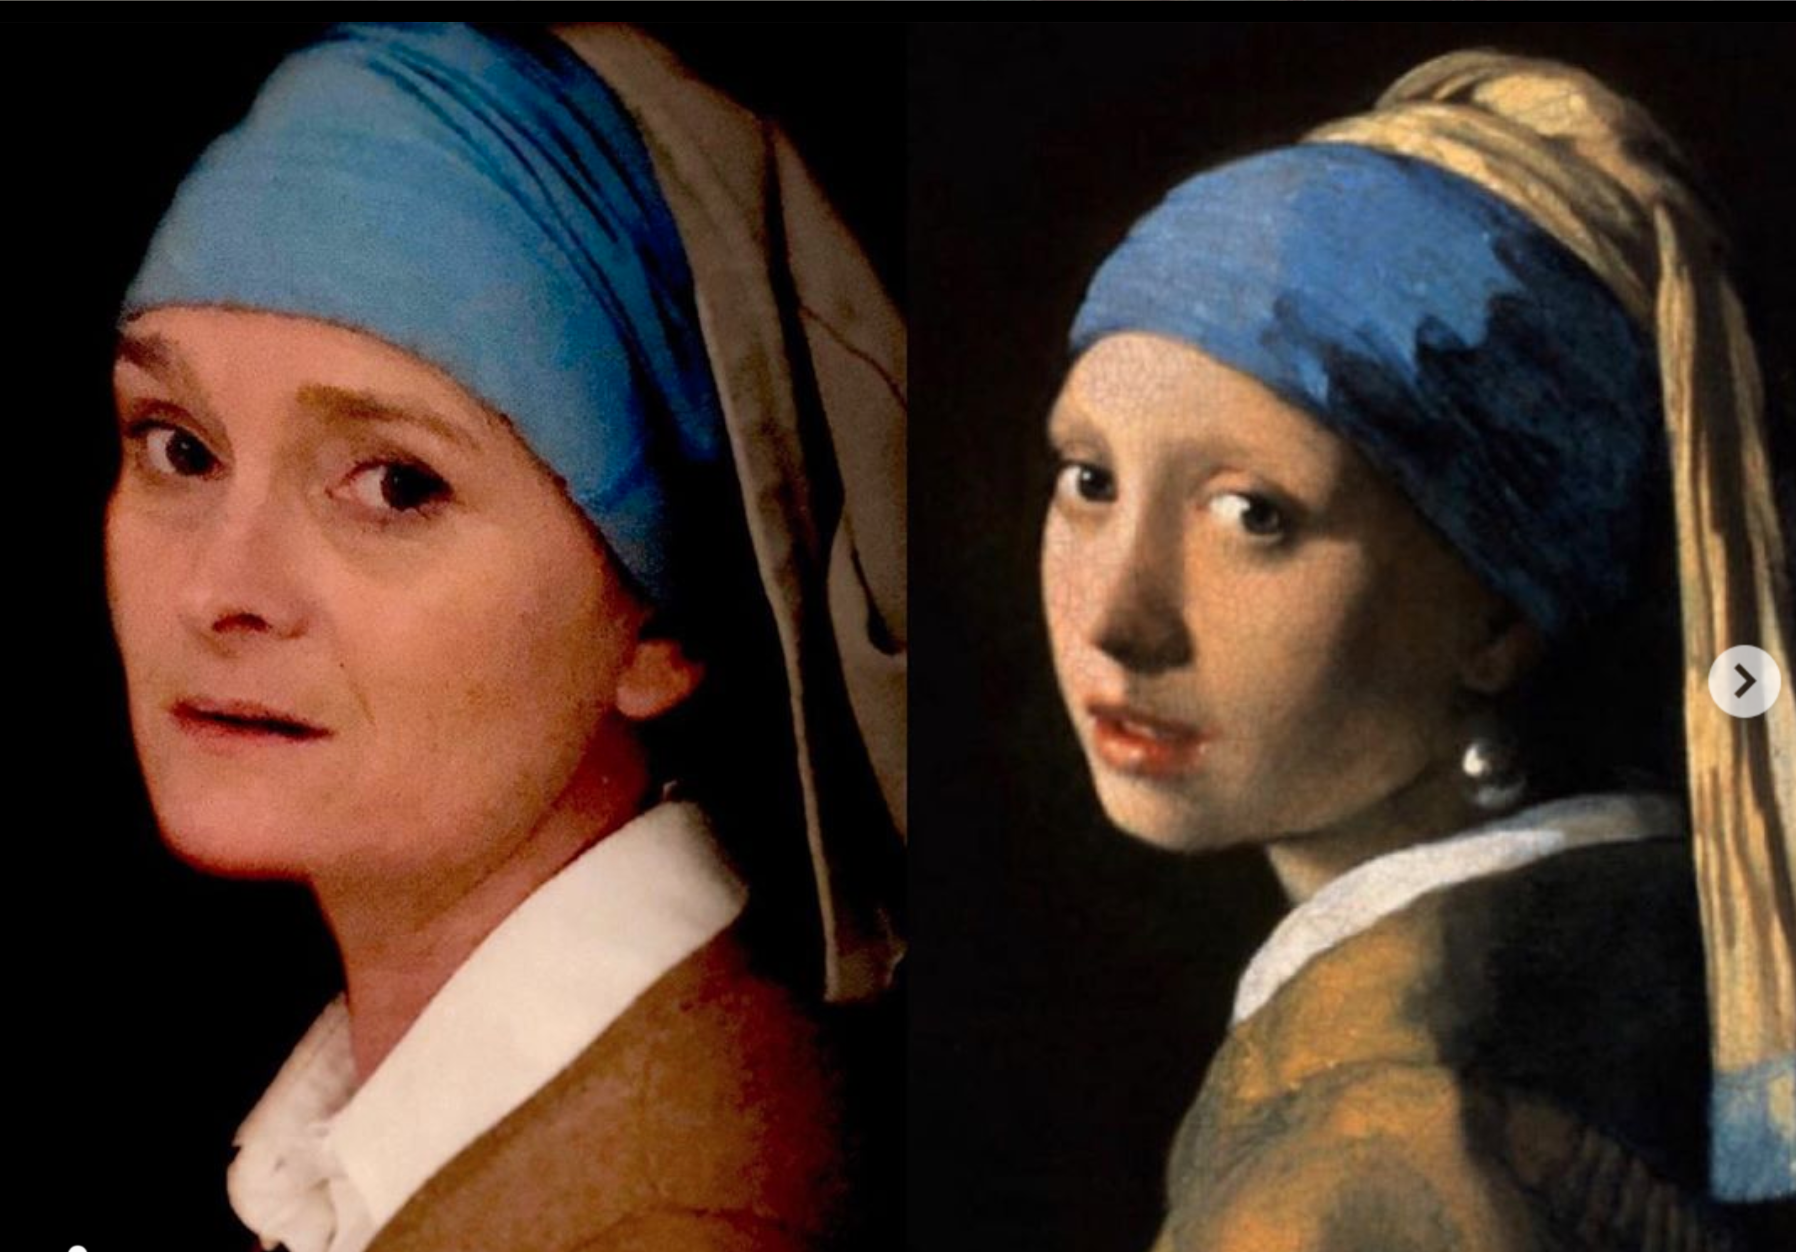 Above: Wendy participating in a challenge from retail stockist Inside Out in Tavistock to reimagine a famous painting. This is a take on Vemeer's Girl with a Pearl Earring – something's missing from your lobes Wends!